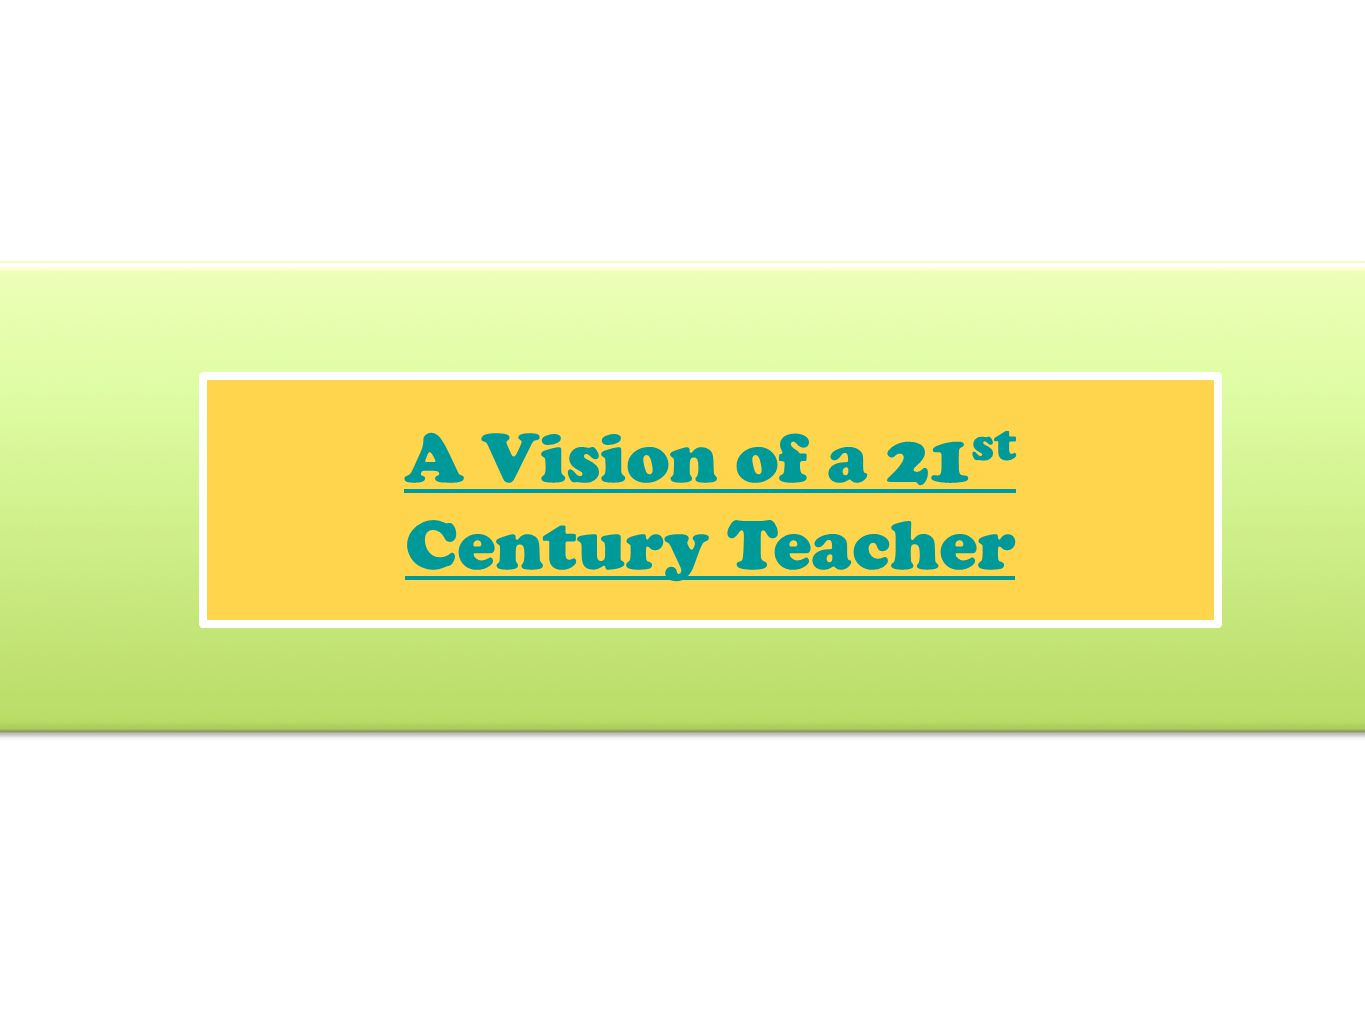 A Vision of a 21st Century Teacher